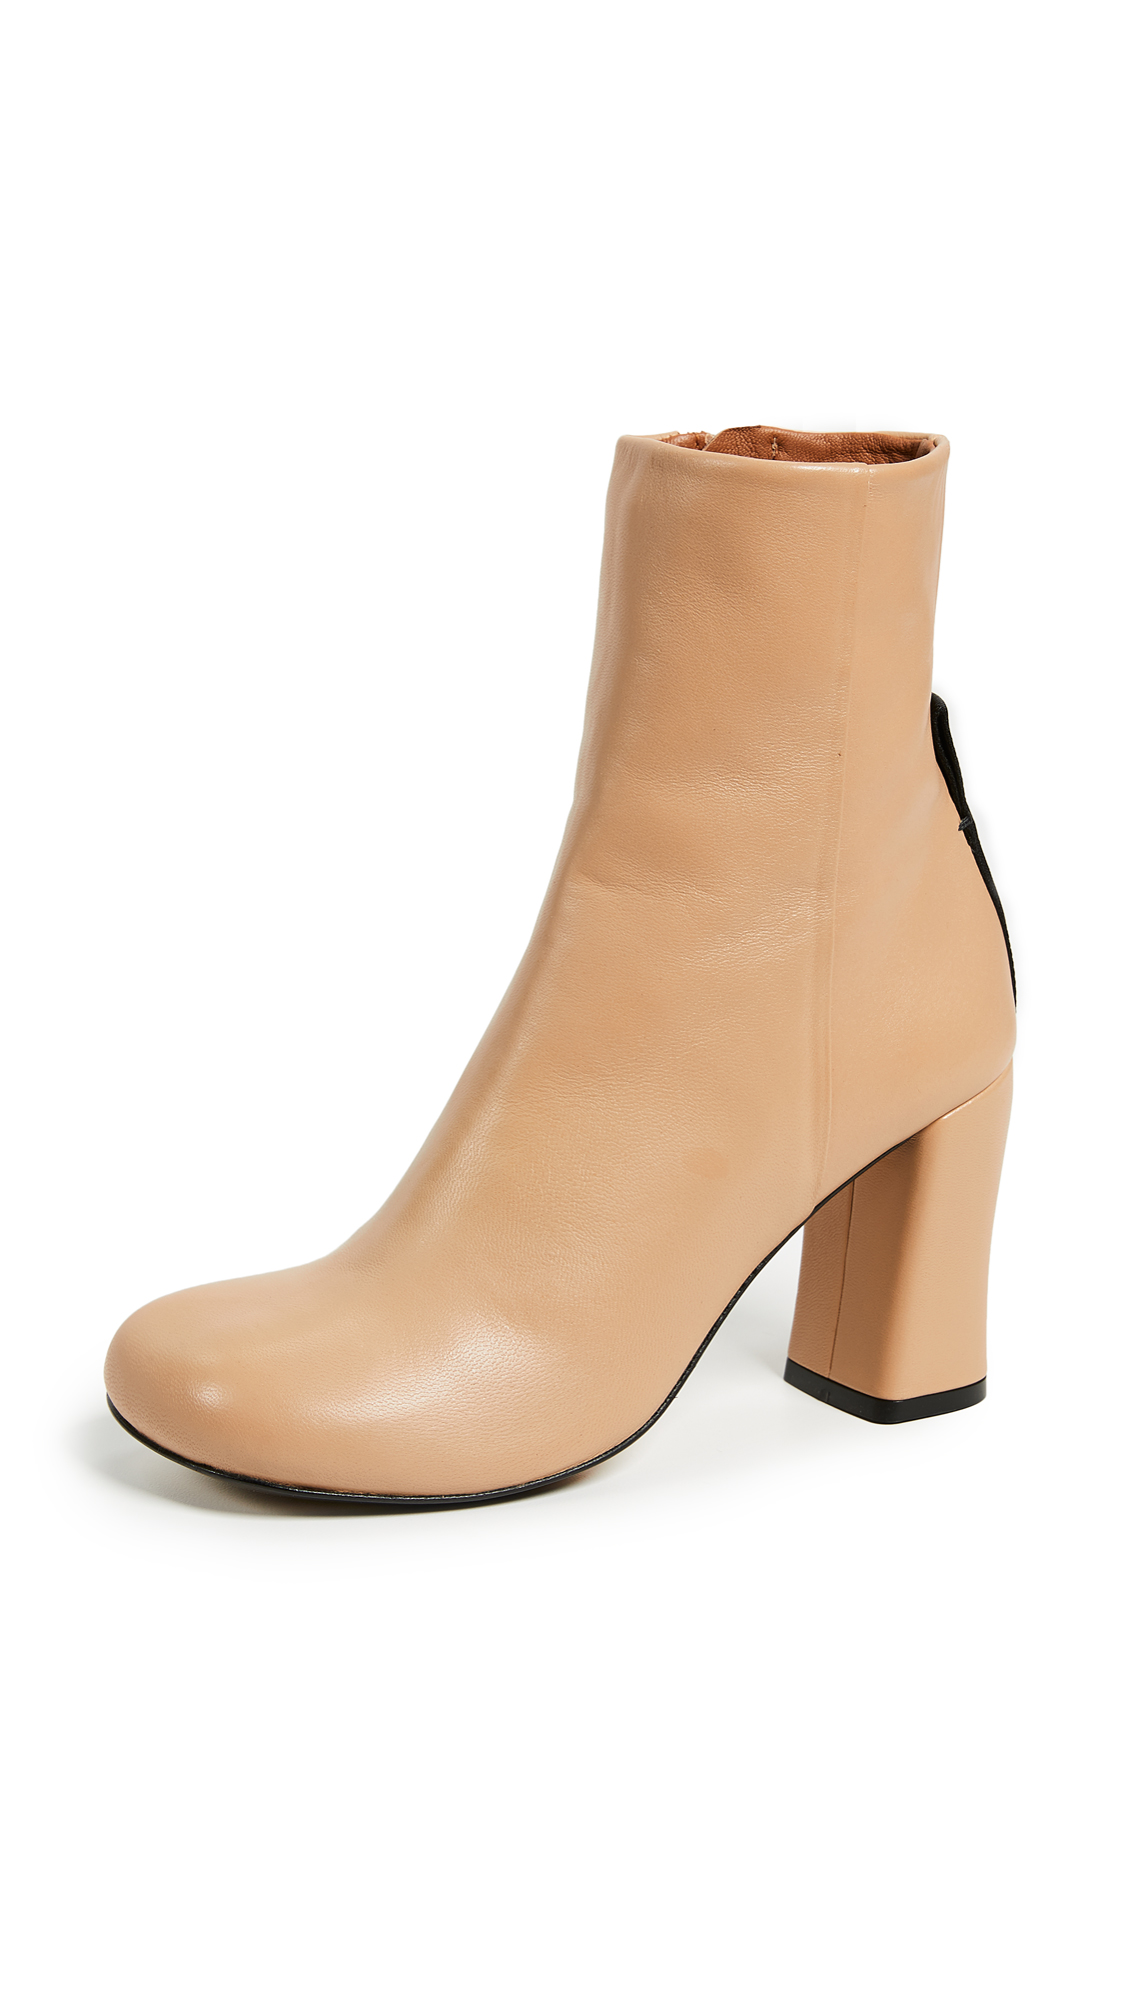 Joseph Boo Ankle Boots - Camel